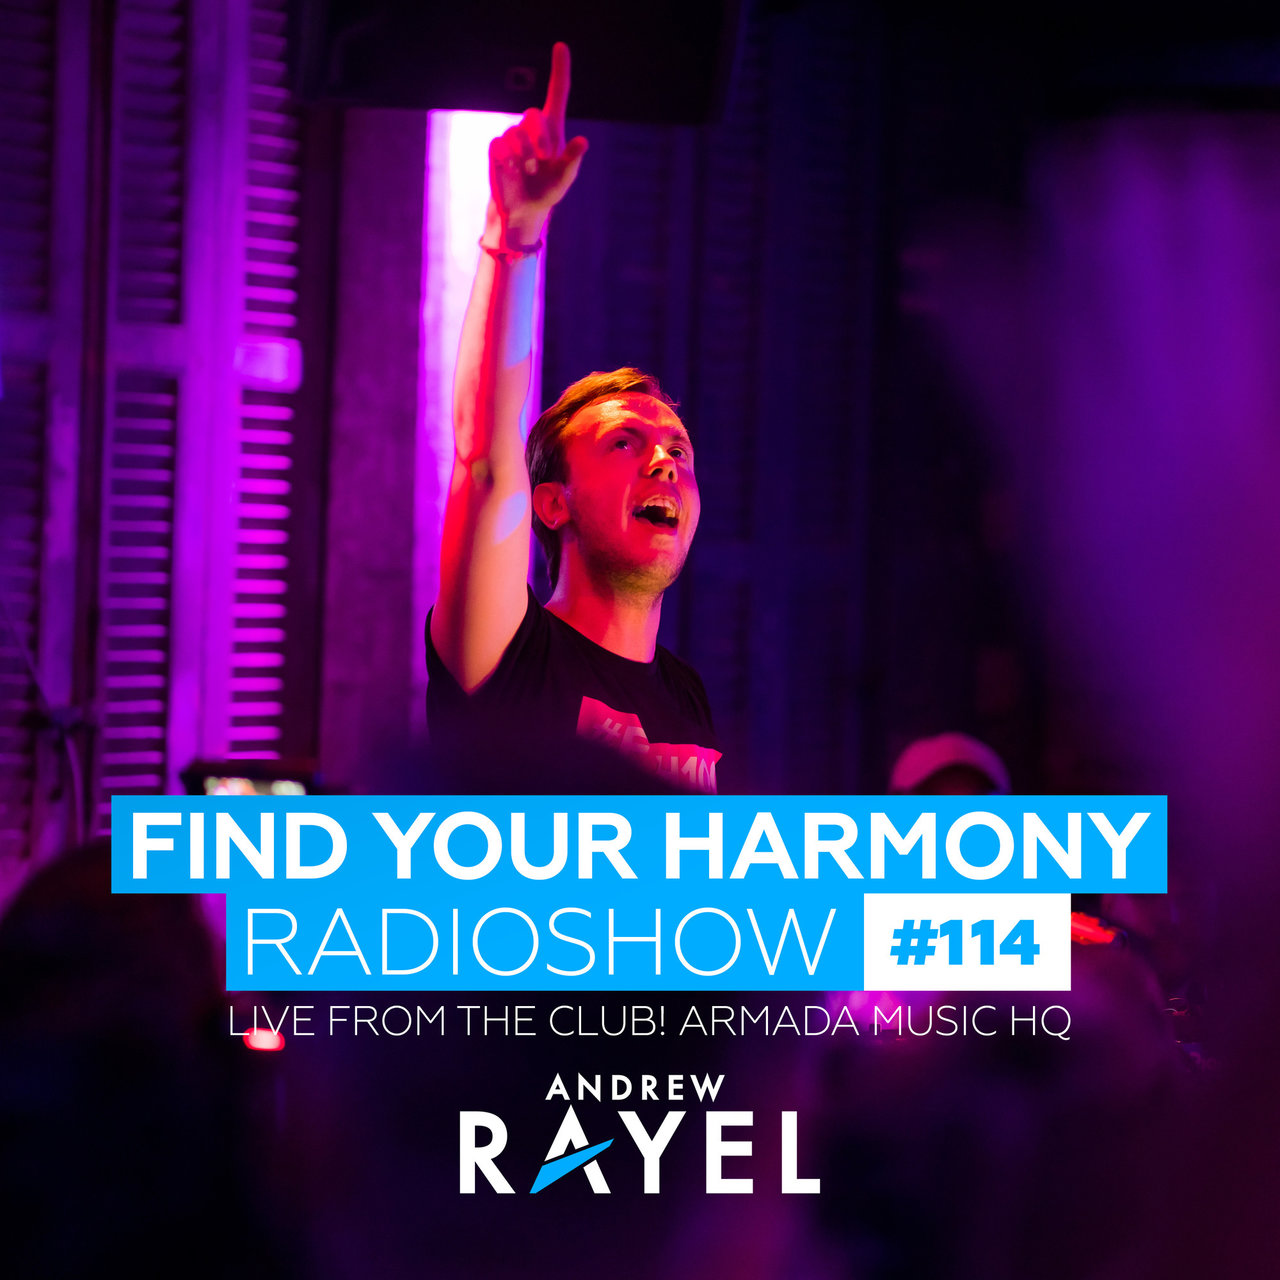 Find Your Harmony Radioshow #114